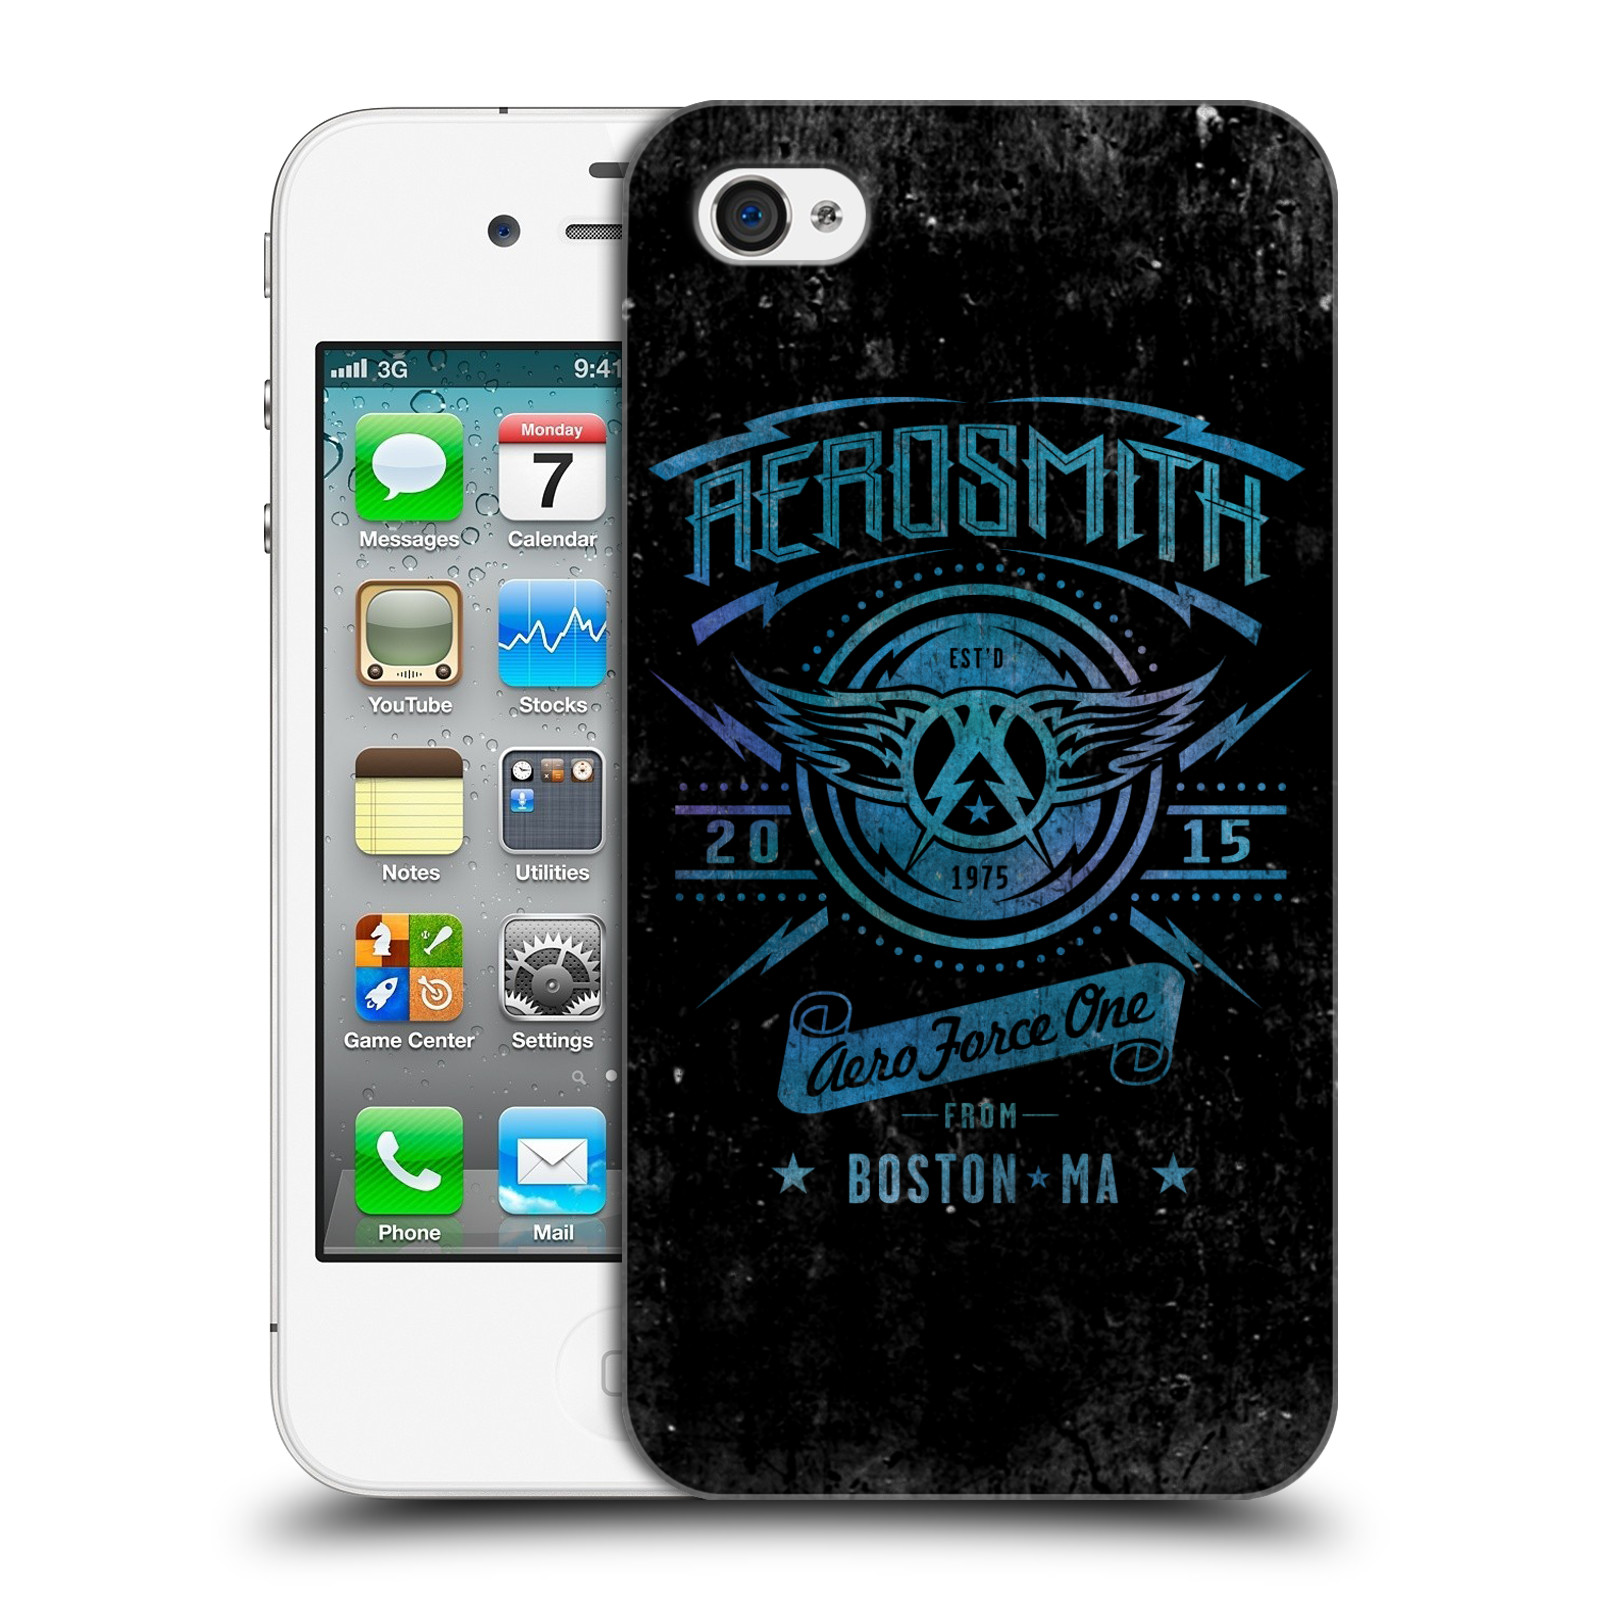 Plastové pouzdro na mobil Apple iPhone 4 a 4S HEAD CASE - Aerosmith - Aero Force One